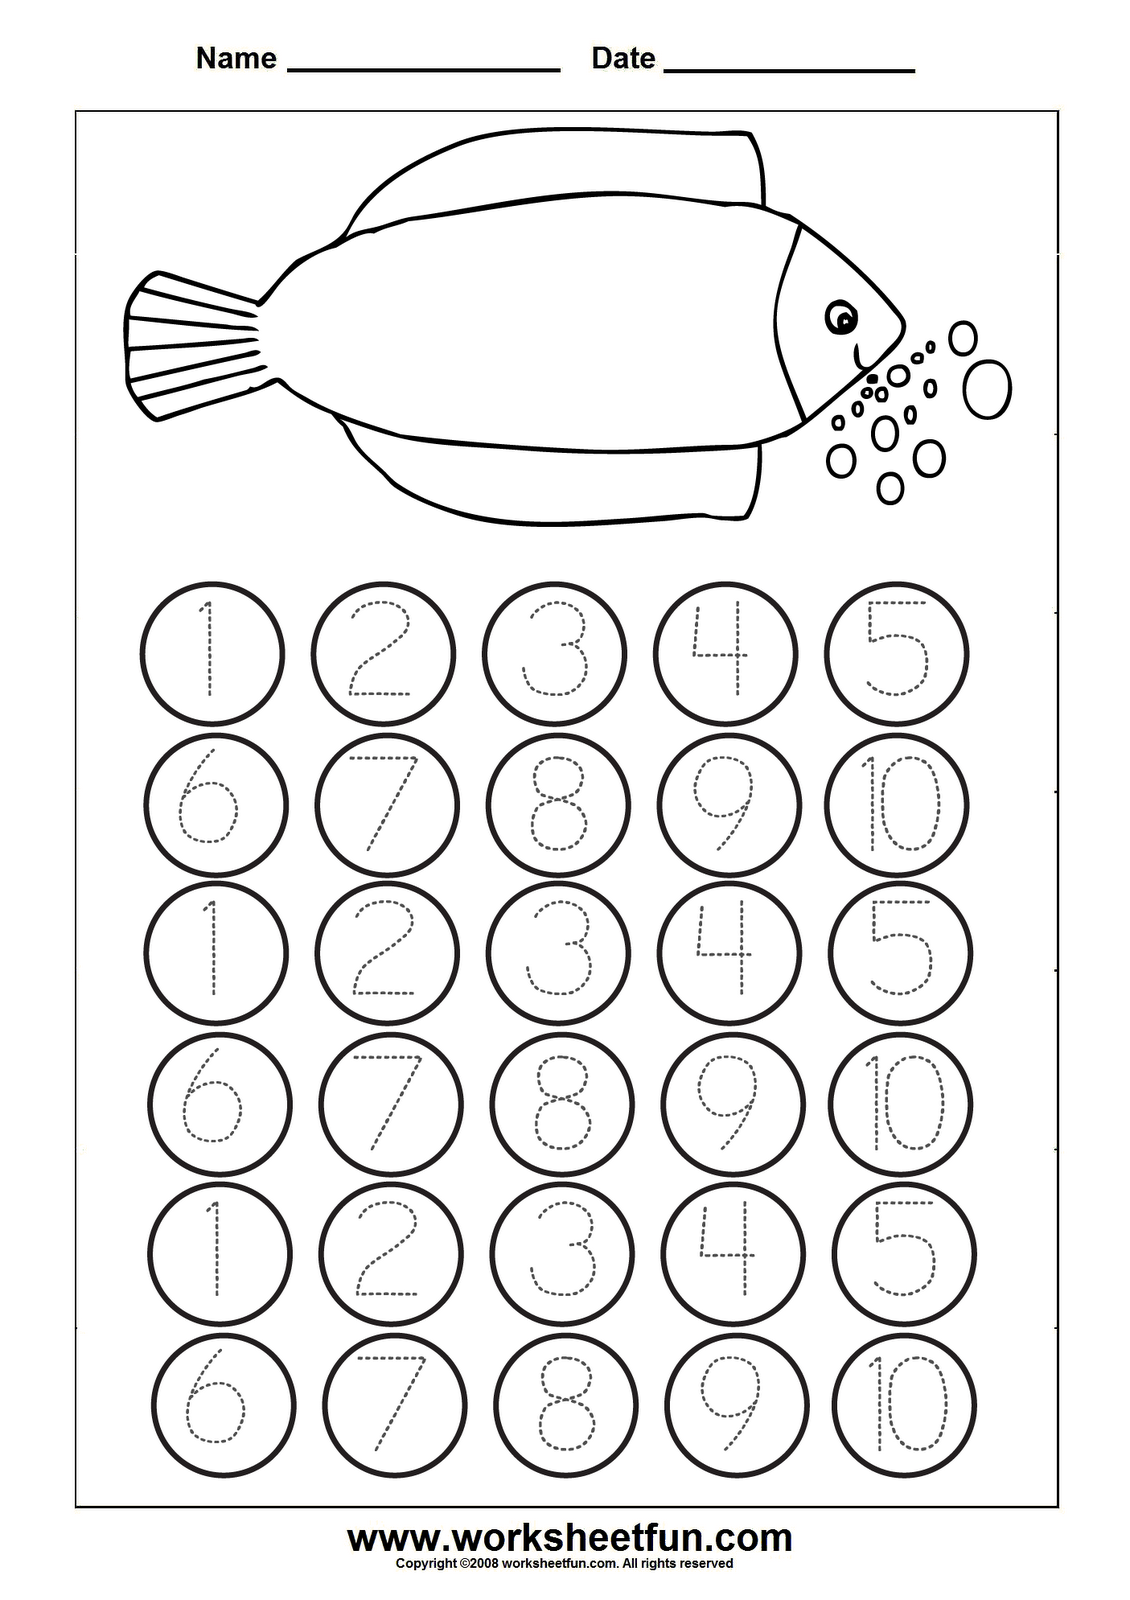 Printables Number Tracing Worksheets For Kindergarten printable number tracing worksheets for kindergarten coffemix